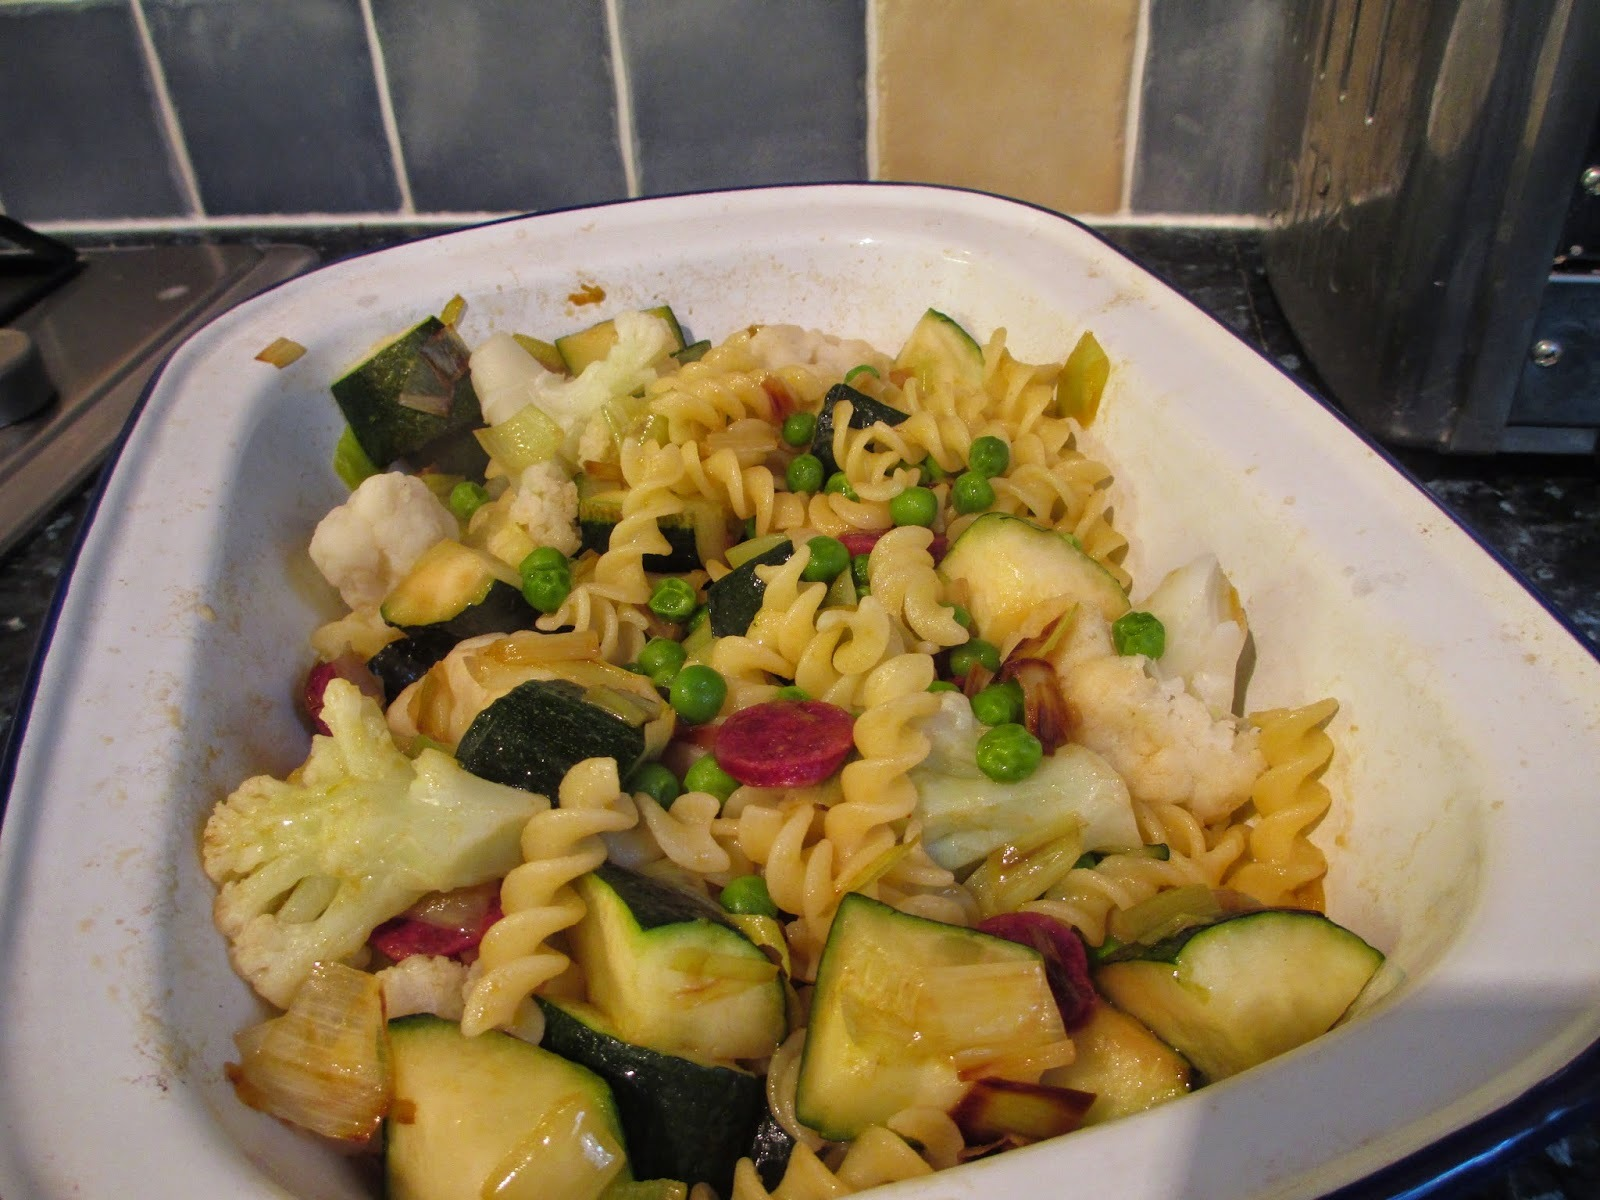 Veggie Pasta Bake with cheese sauce - Chorizo optional